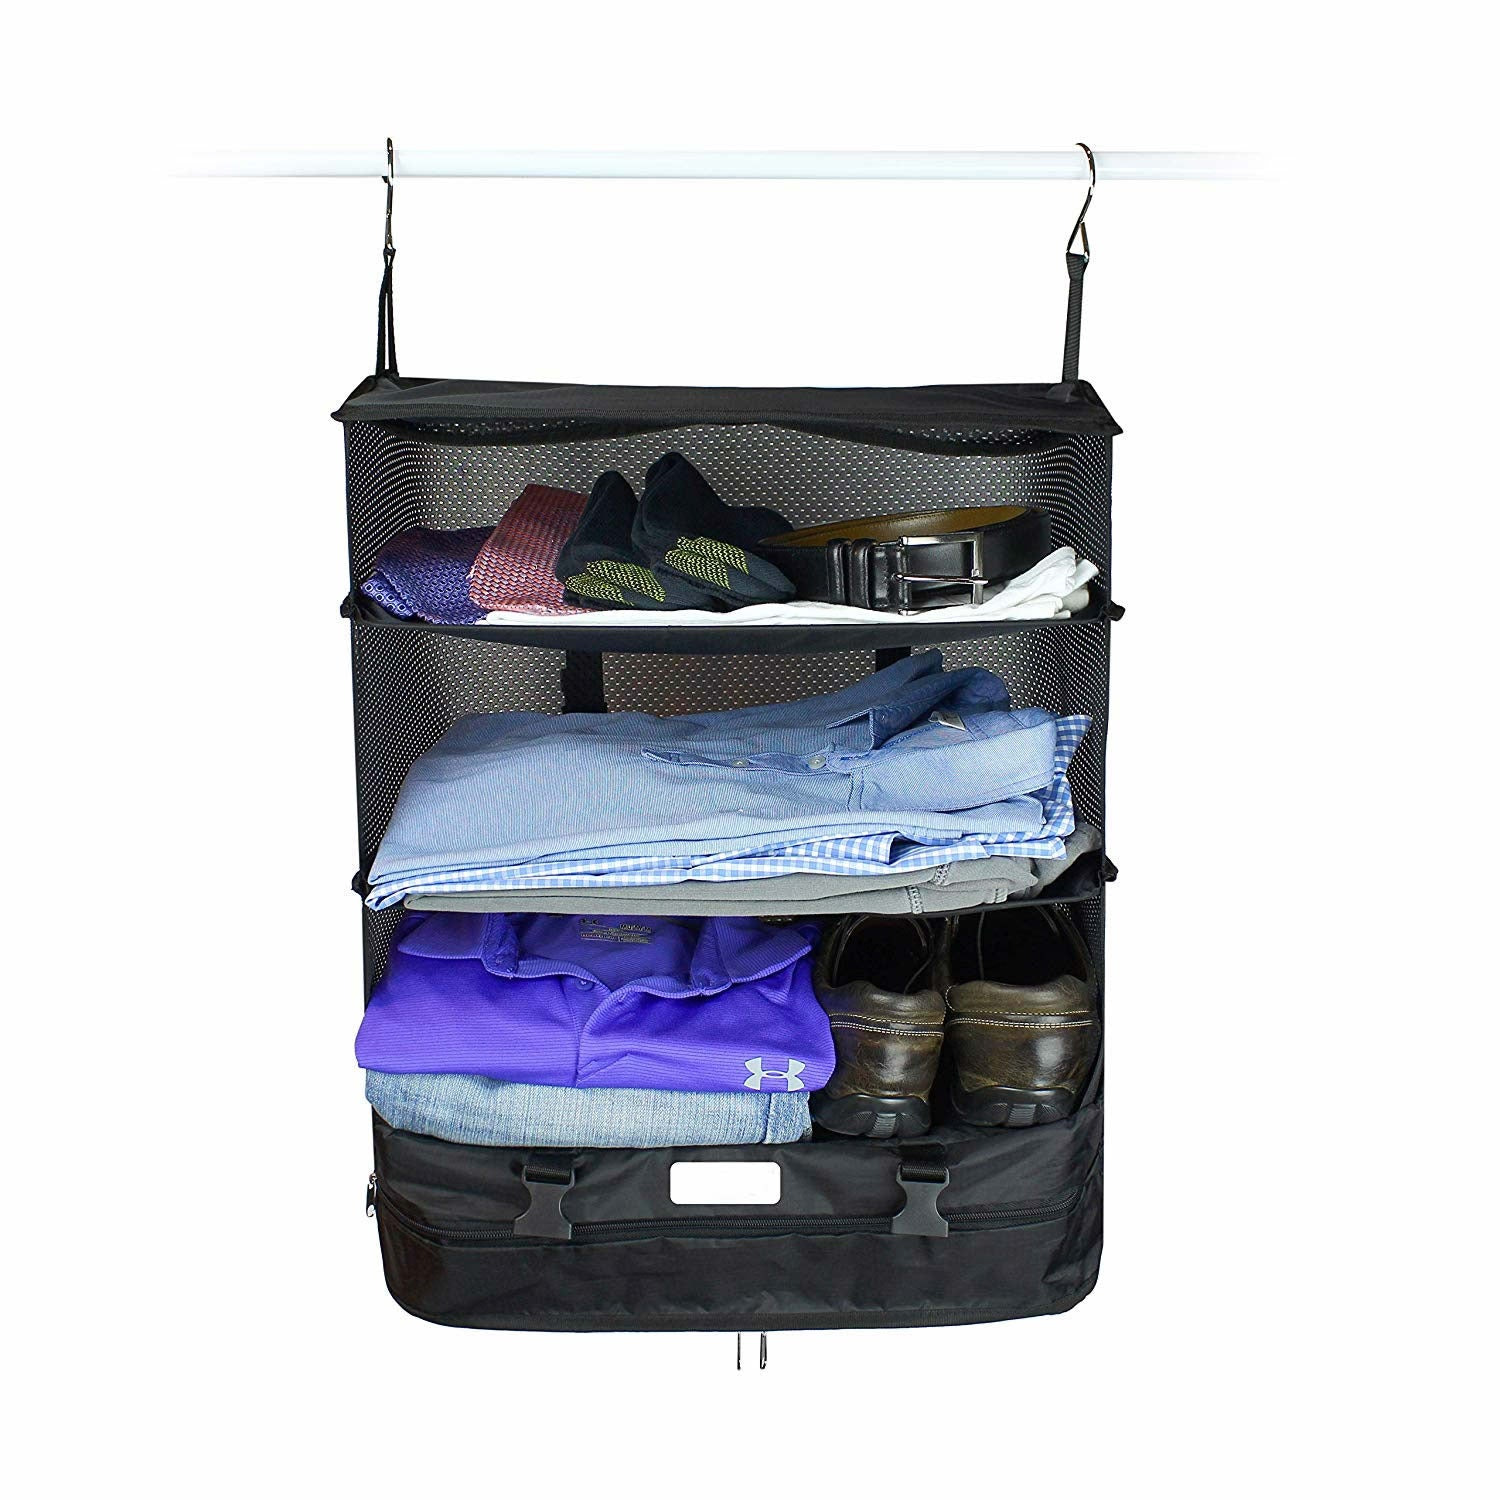 shopify-Carry On Closet Baggage Organizer-7